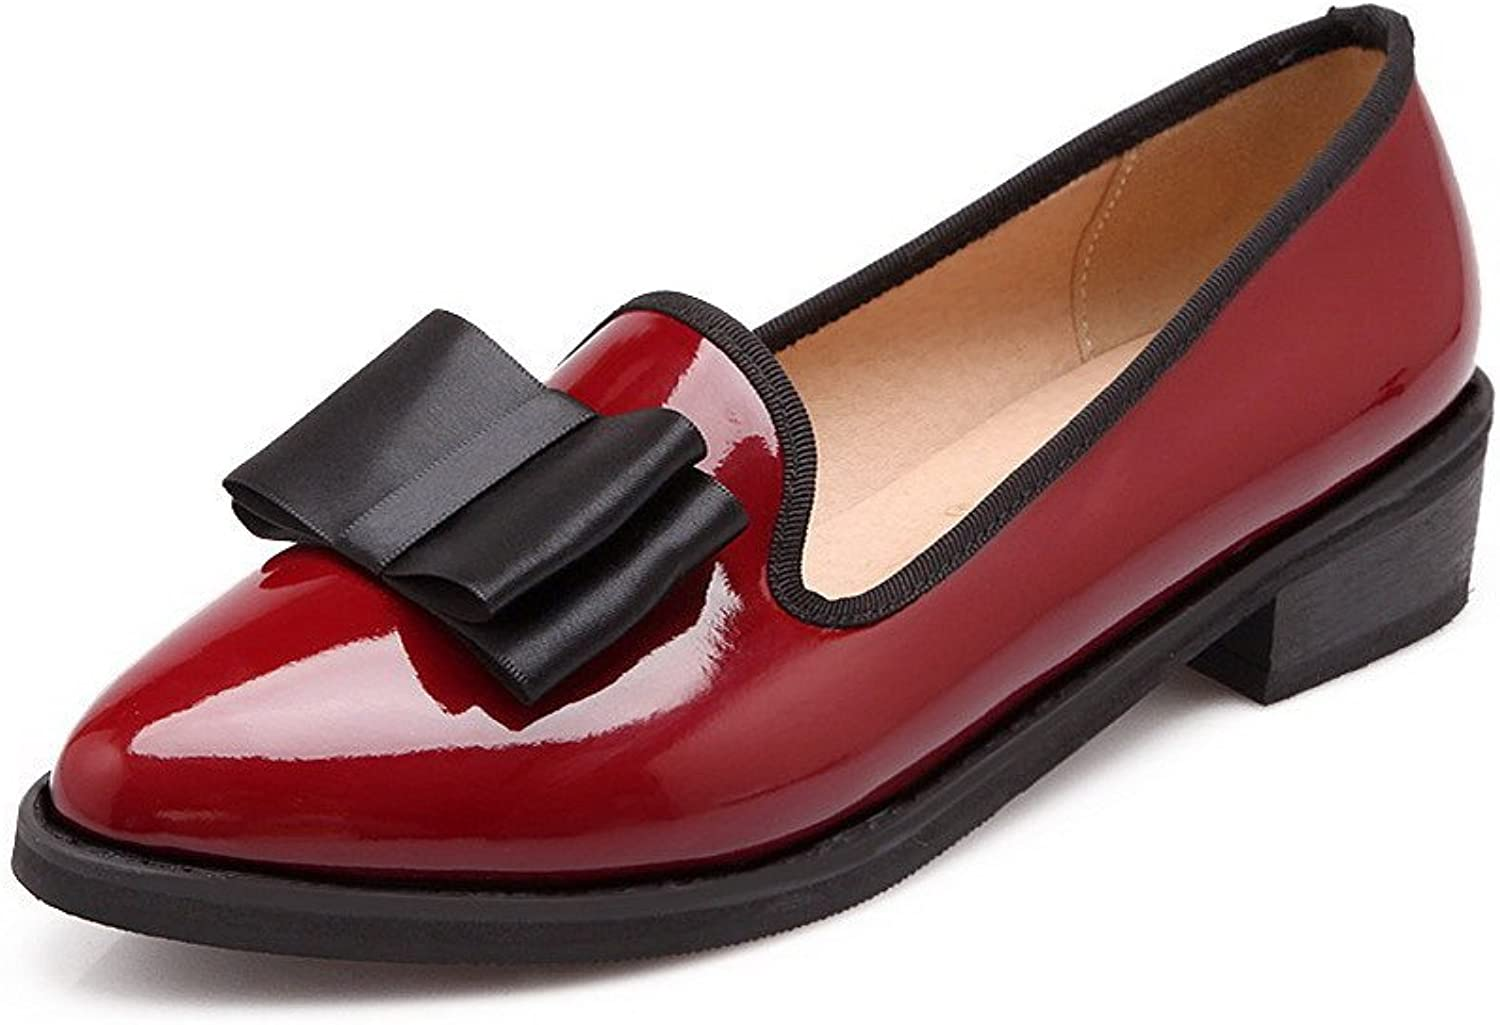 WeenFashion Women's Pointed Closed Toe Low-Heels Patent Leather Solid Pull-on Pumps-shoes